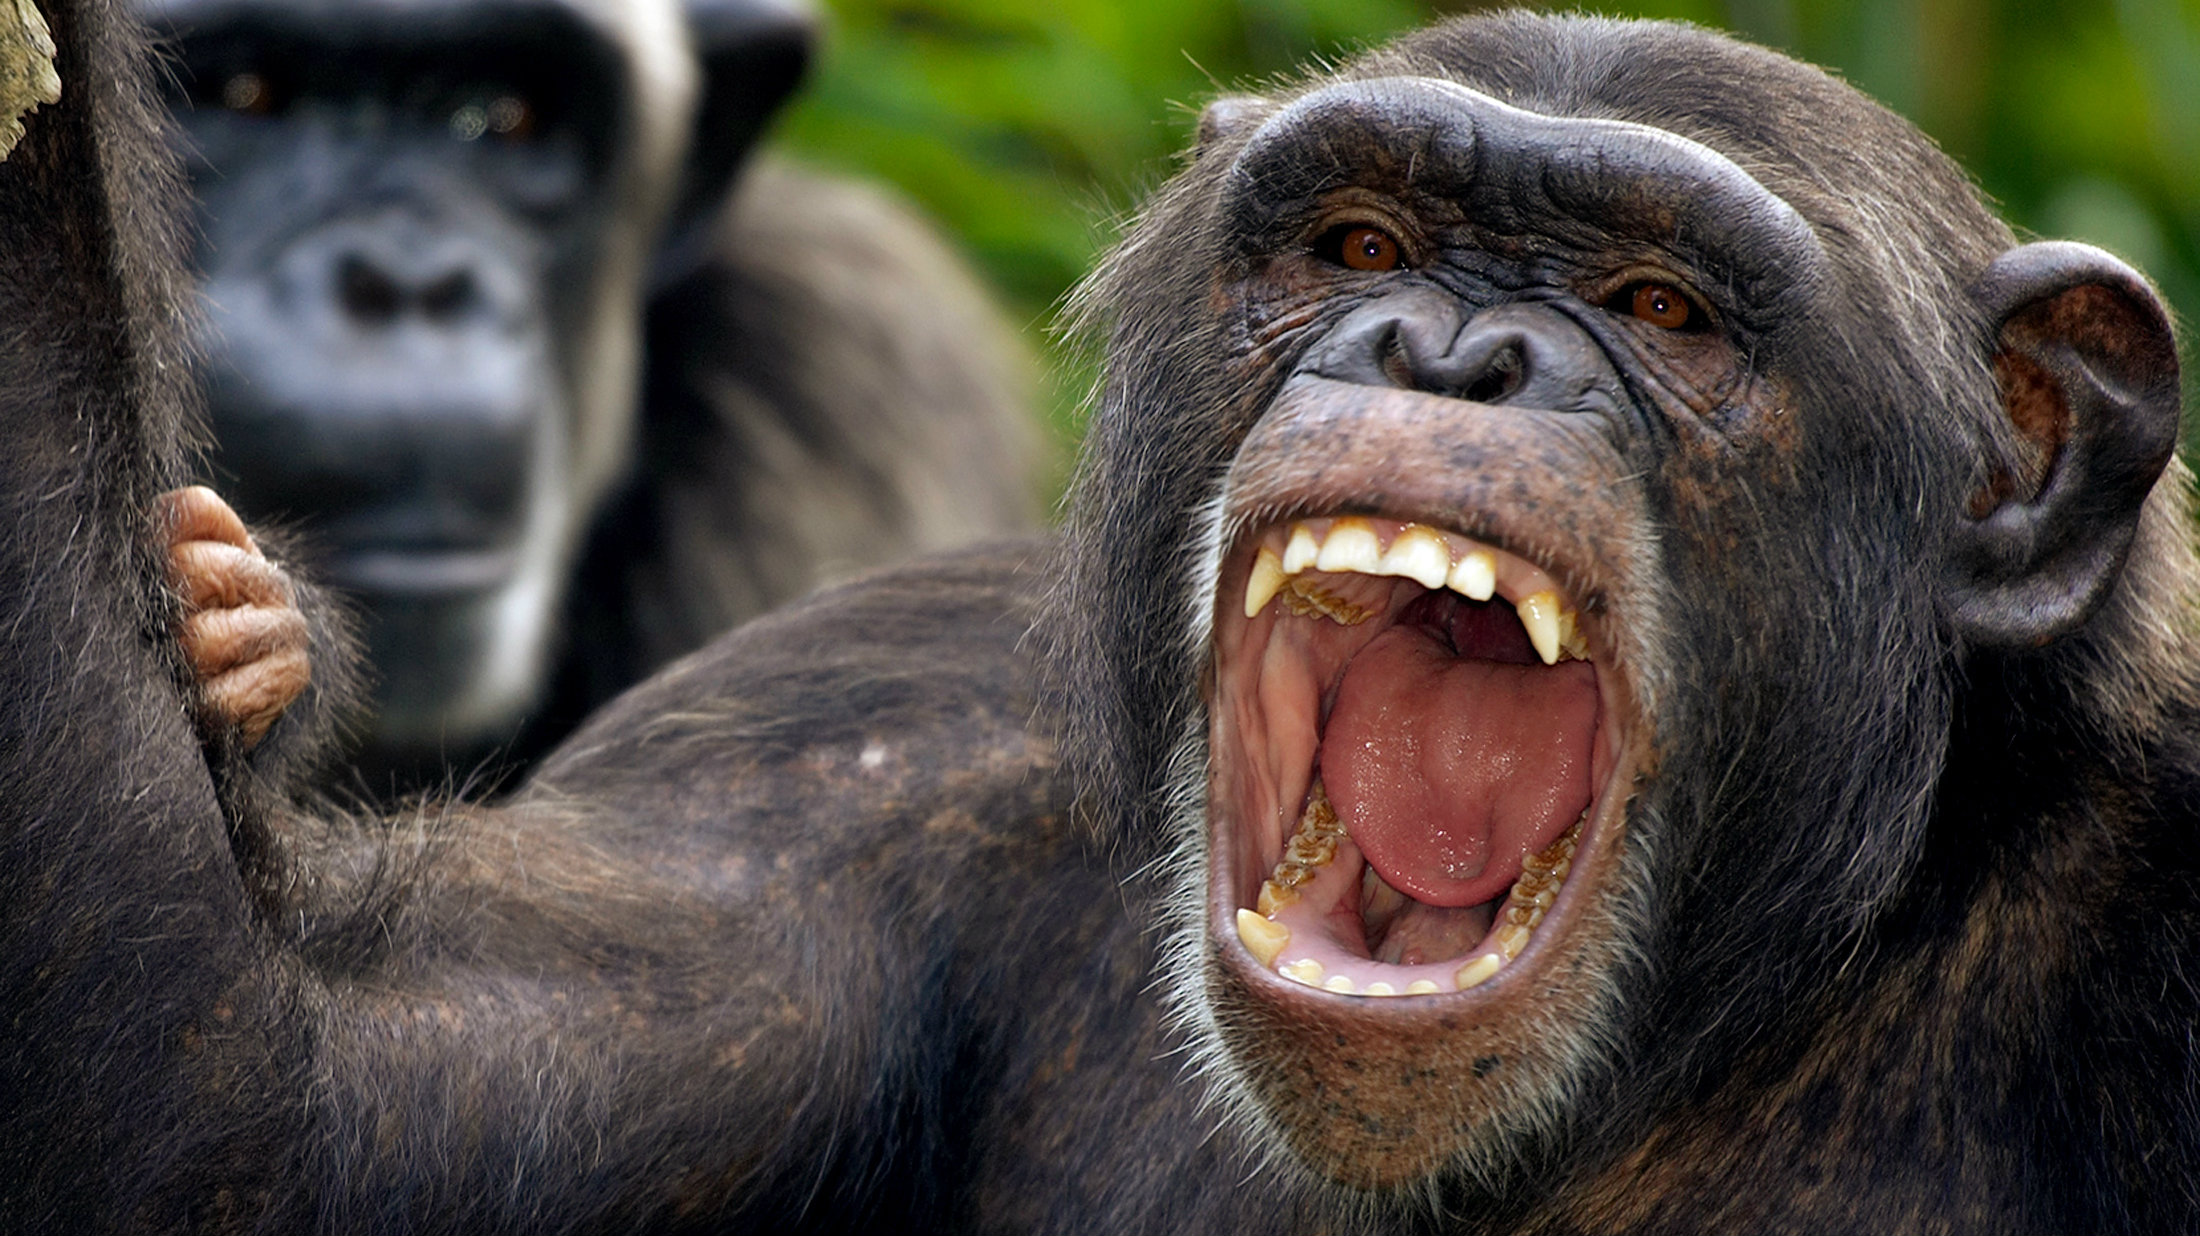 A chimpanzee yawns as it looks into the camera from its enclosure at the Singapore Zoo, Singapore May 13 2005. The Singapore Zoo has long been acclaimed for its open zoo concept, where animals live in spacious and landscaped enclosures simulating that of their natural habitat. REUTERS/Tim Chong TC/PN